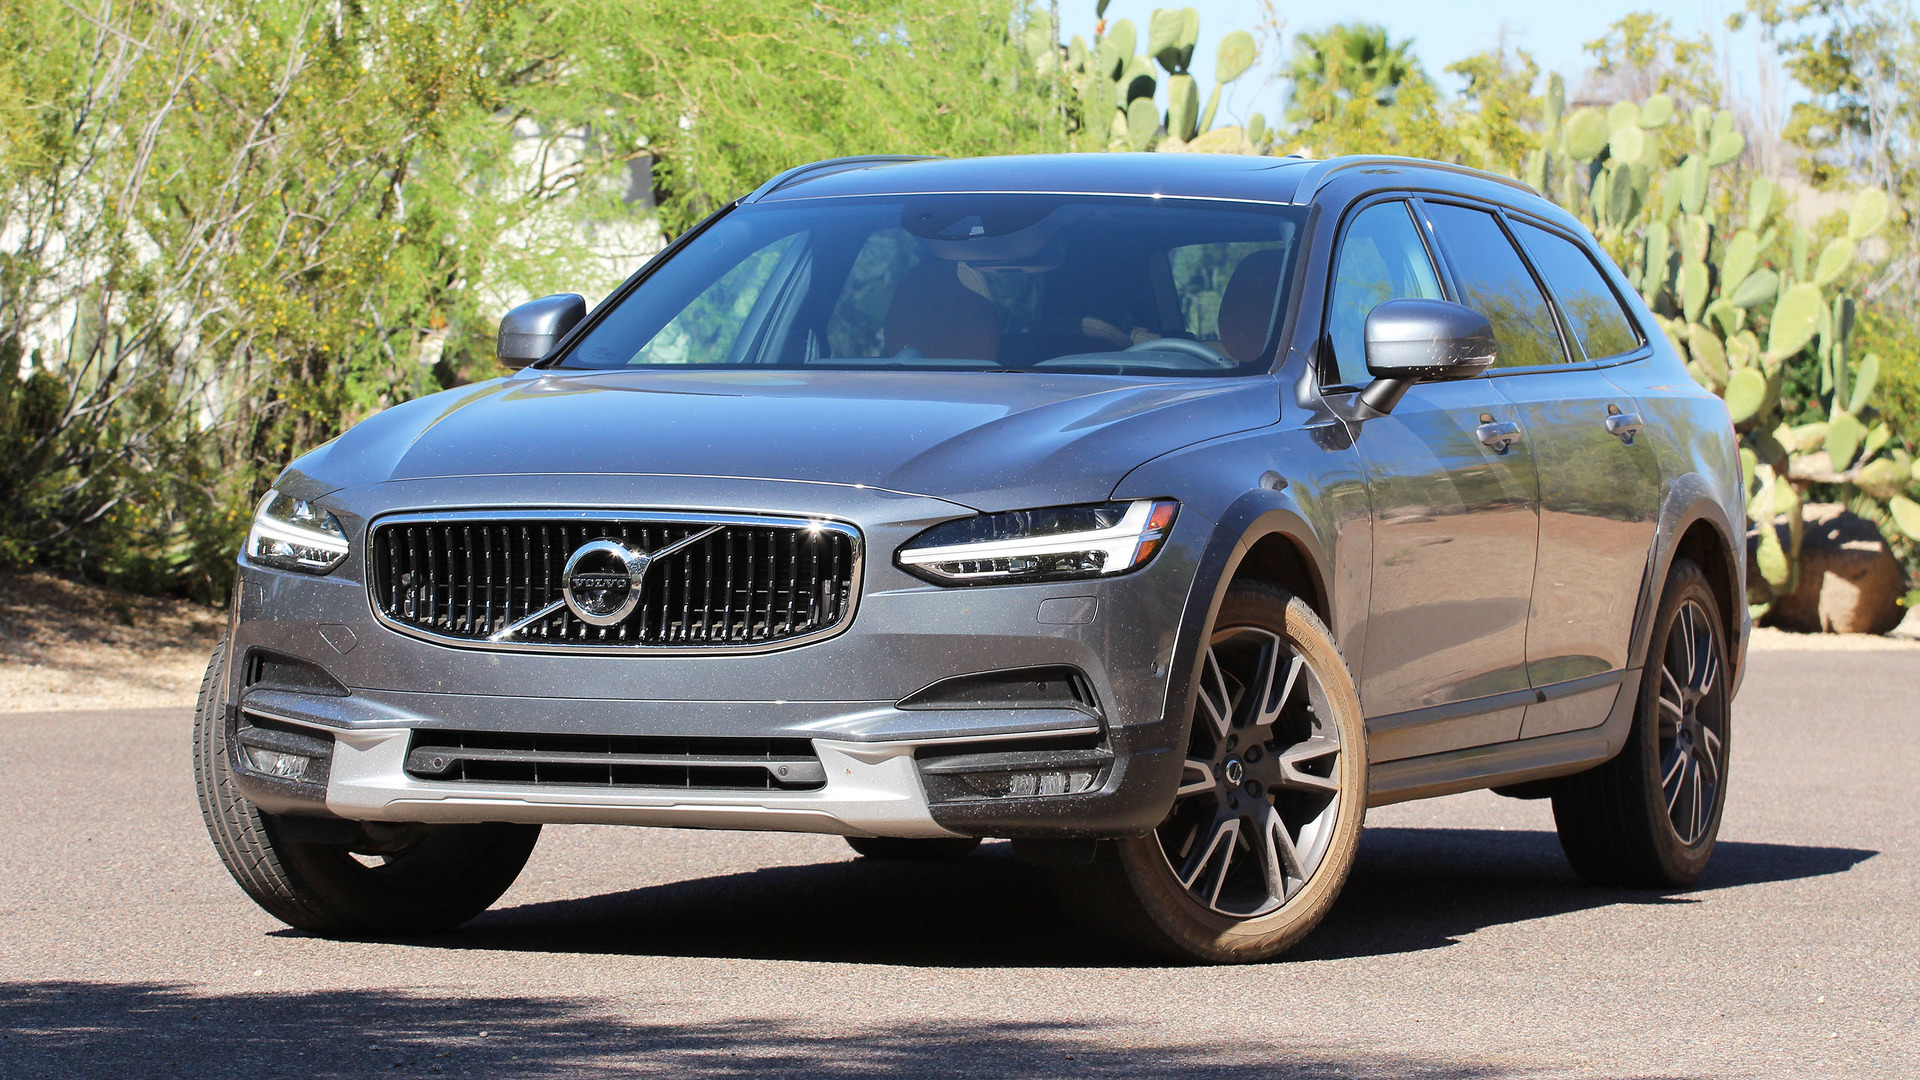 2017 volvo v90 cross country first drive like an suv, but betterVolvo Xc Cross Country #18